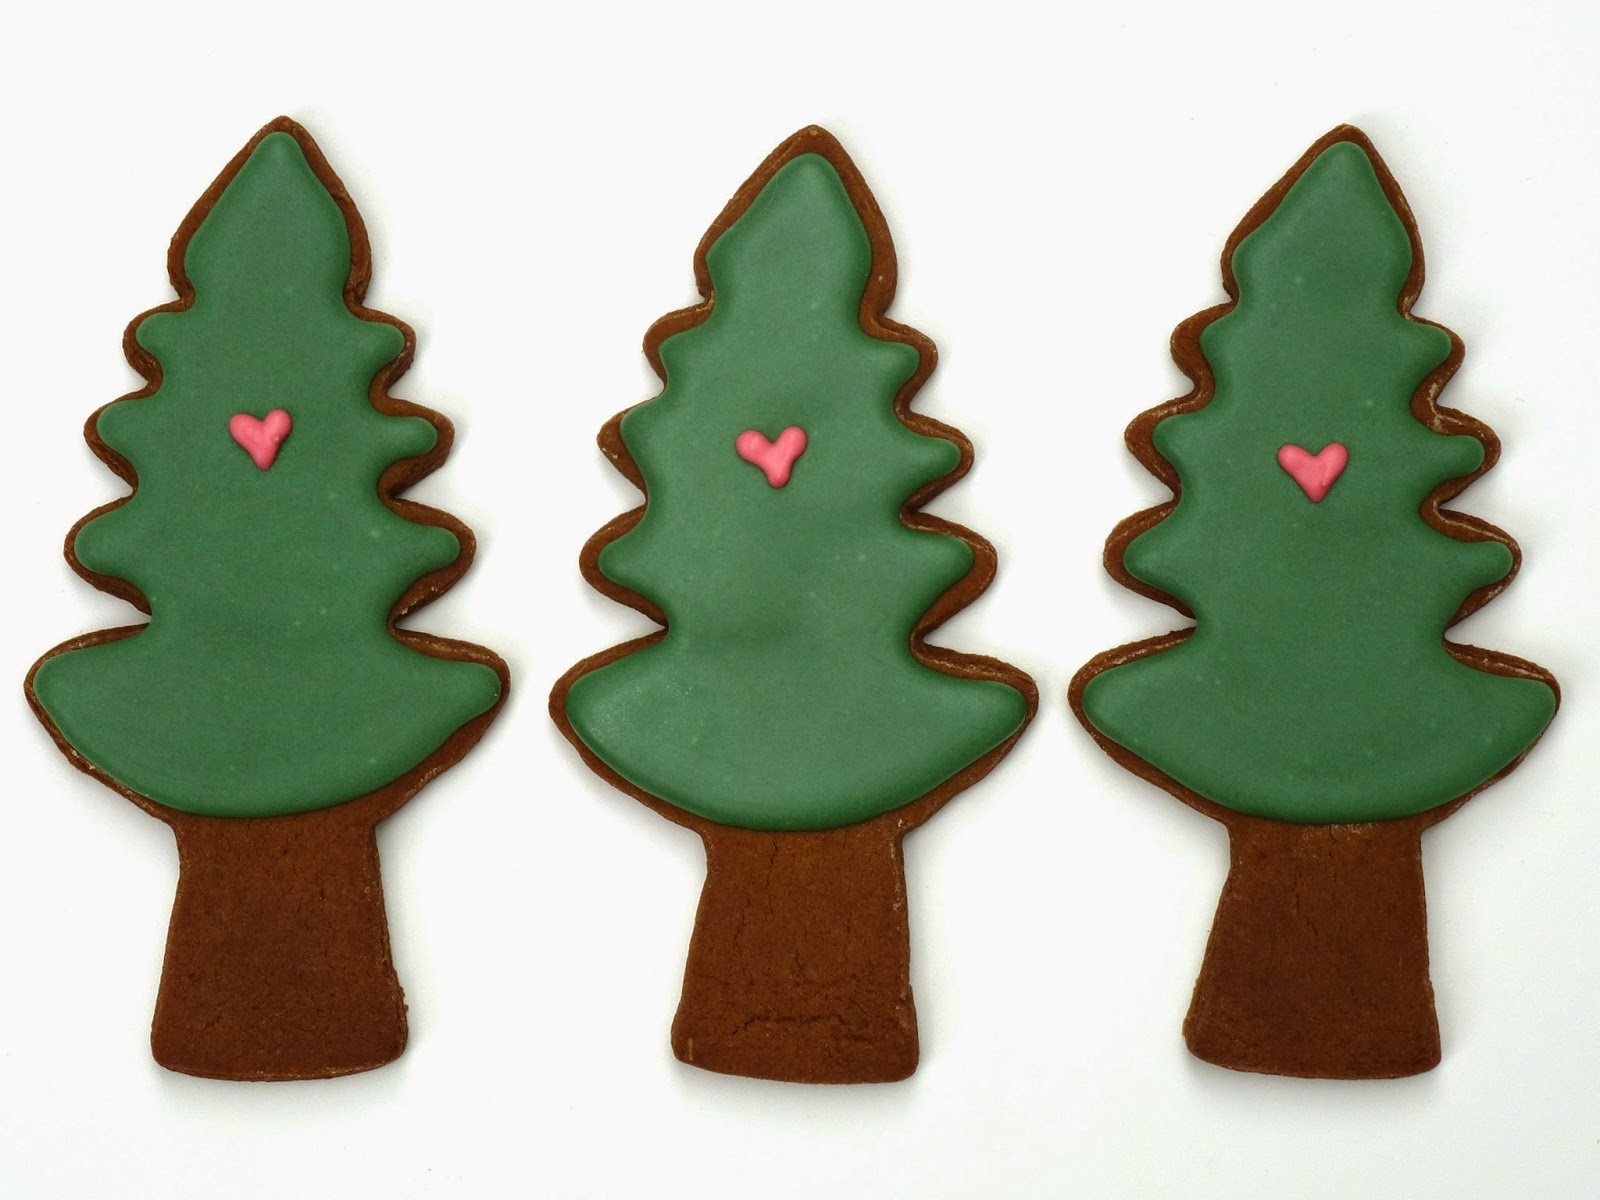 Three Decorated Tree Cookies with Hearts